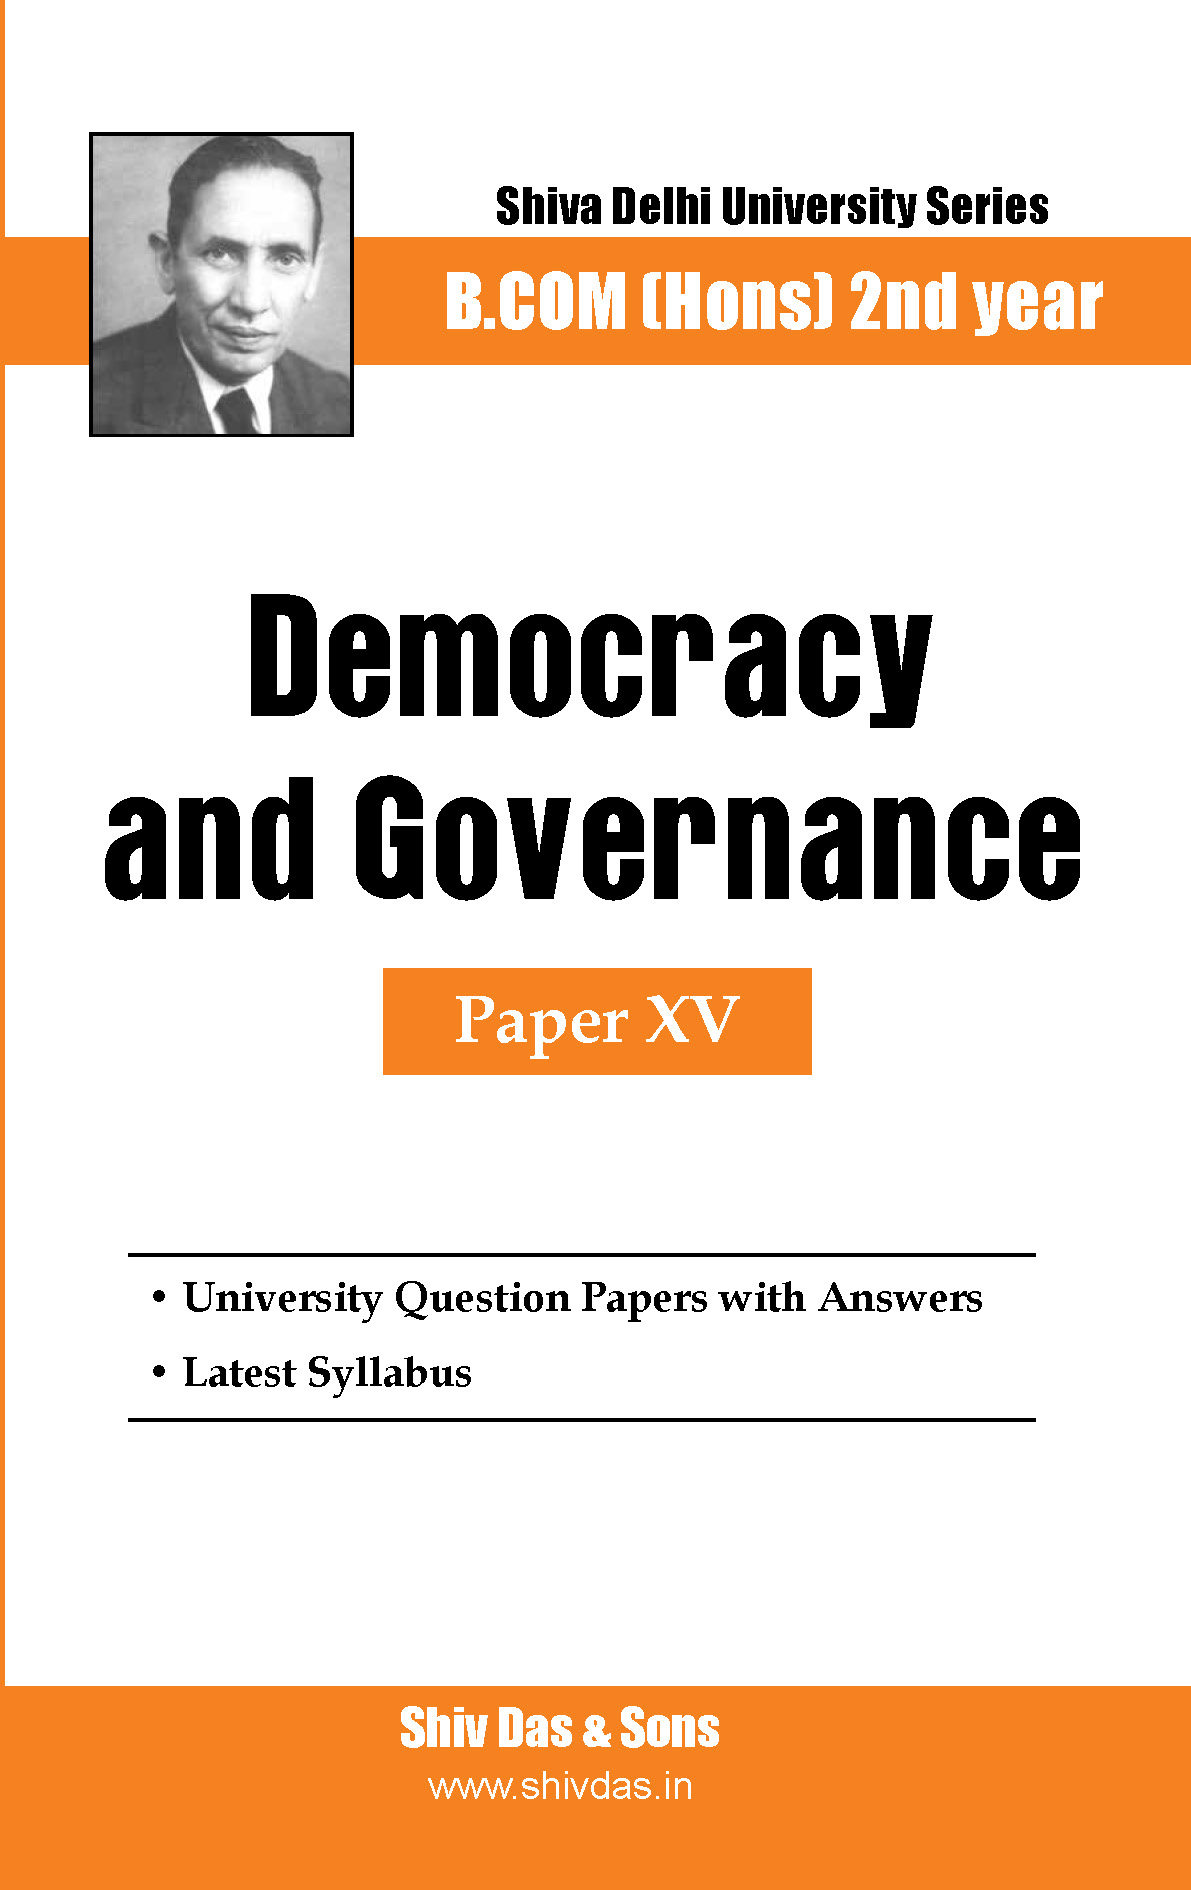 Democracy and Governance B.Com Hons 2nd Year-SOL/External